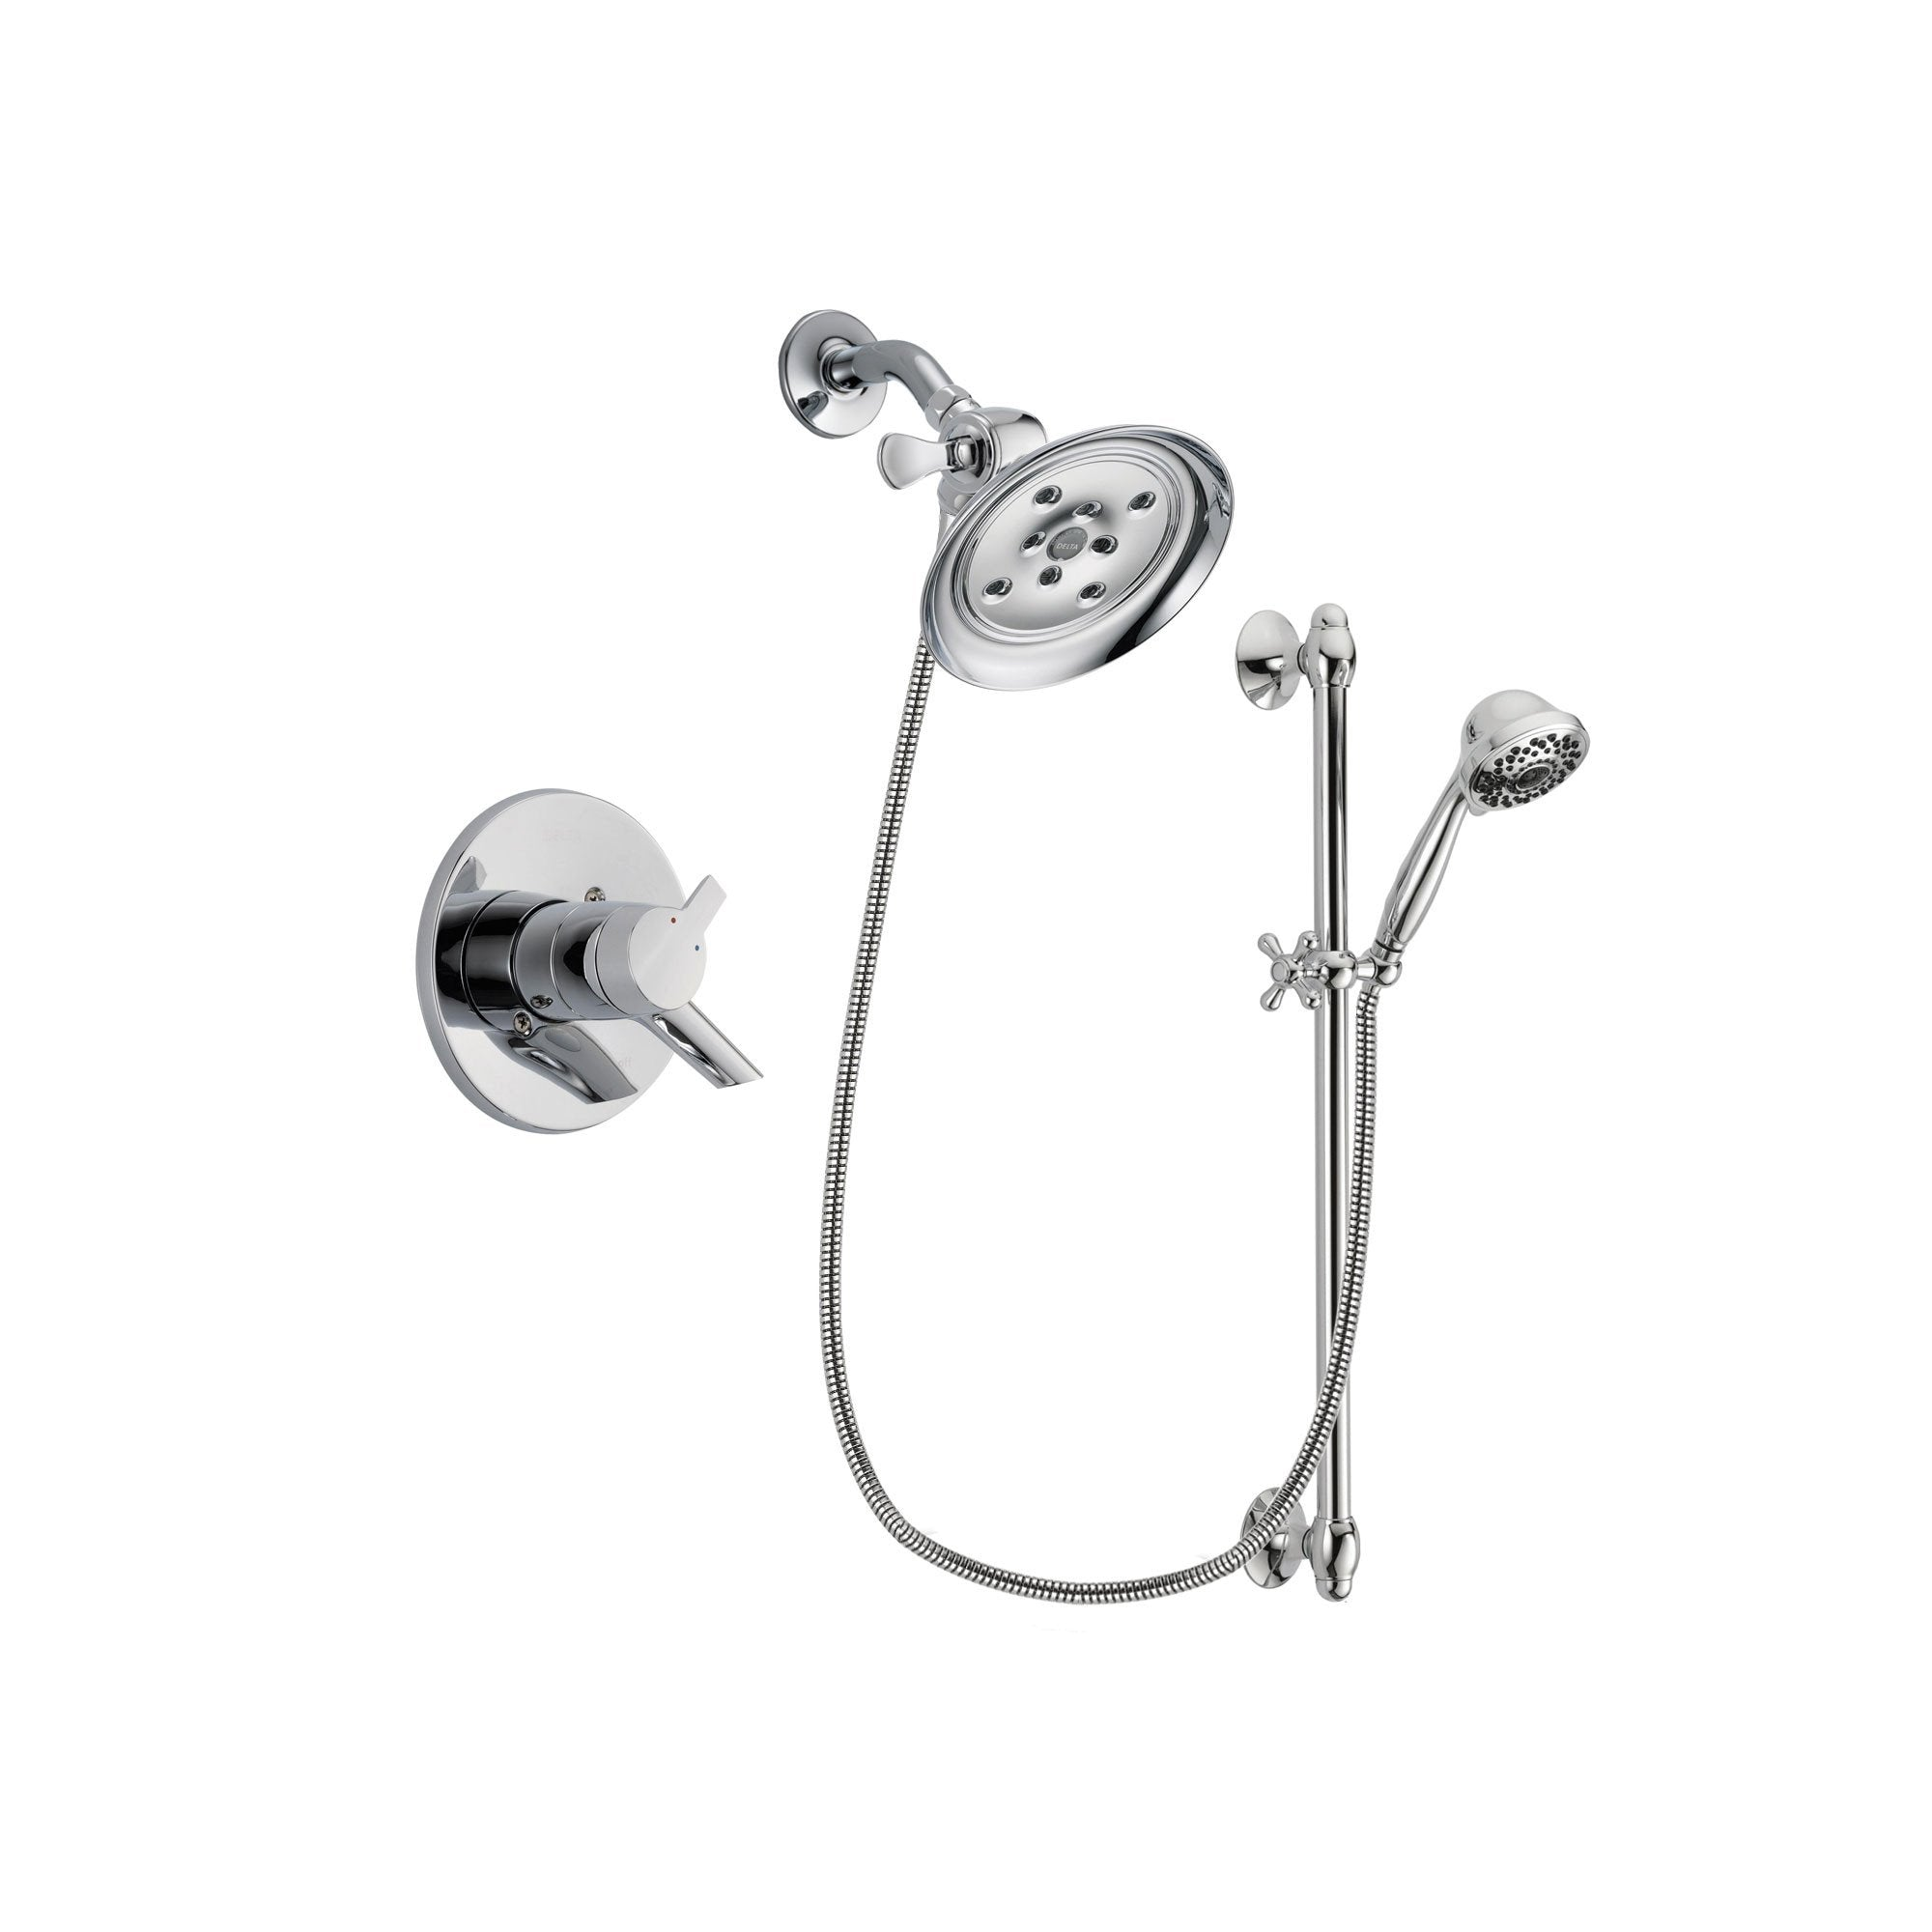 Delta Compel Chrome Shower Faucet System w/ Shower Head and Hand Shower DSP0654V